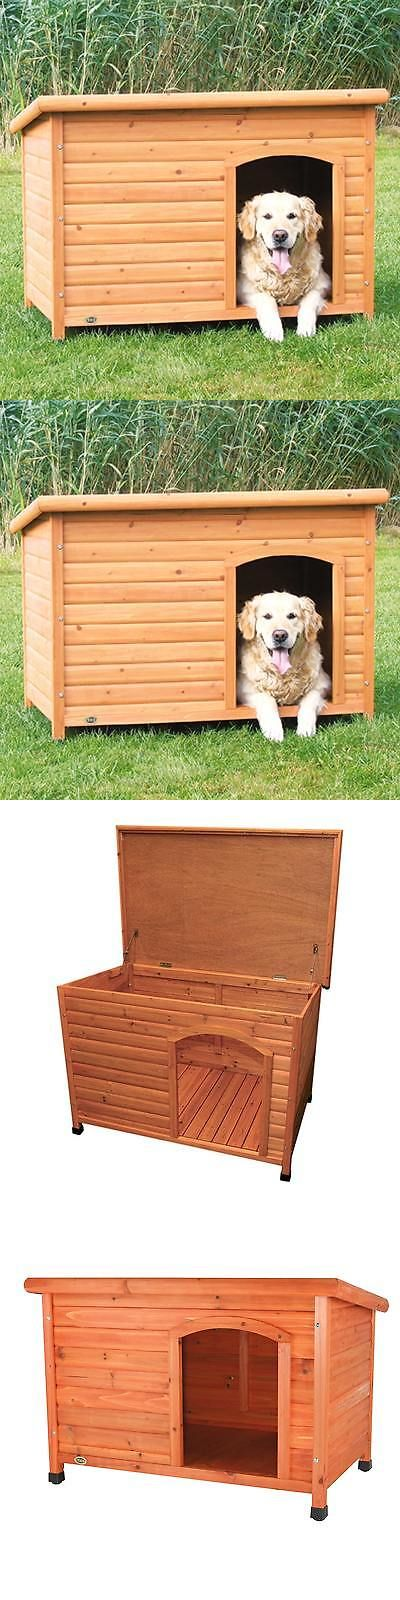 Dog Houses 108884: Trixie Extra Large Dog Club House -> BUY IT NOW ONLY: $163.99 on eBay!